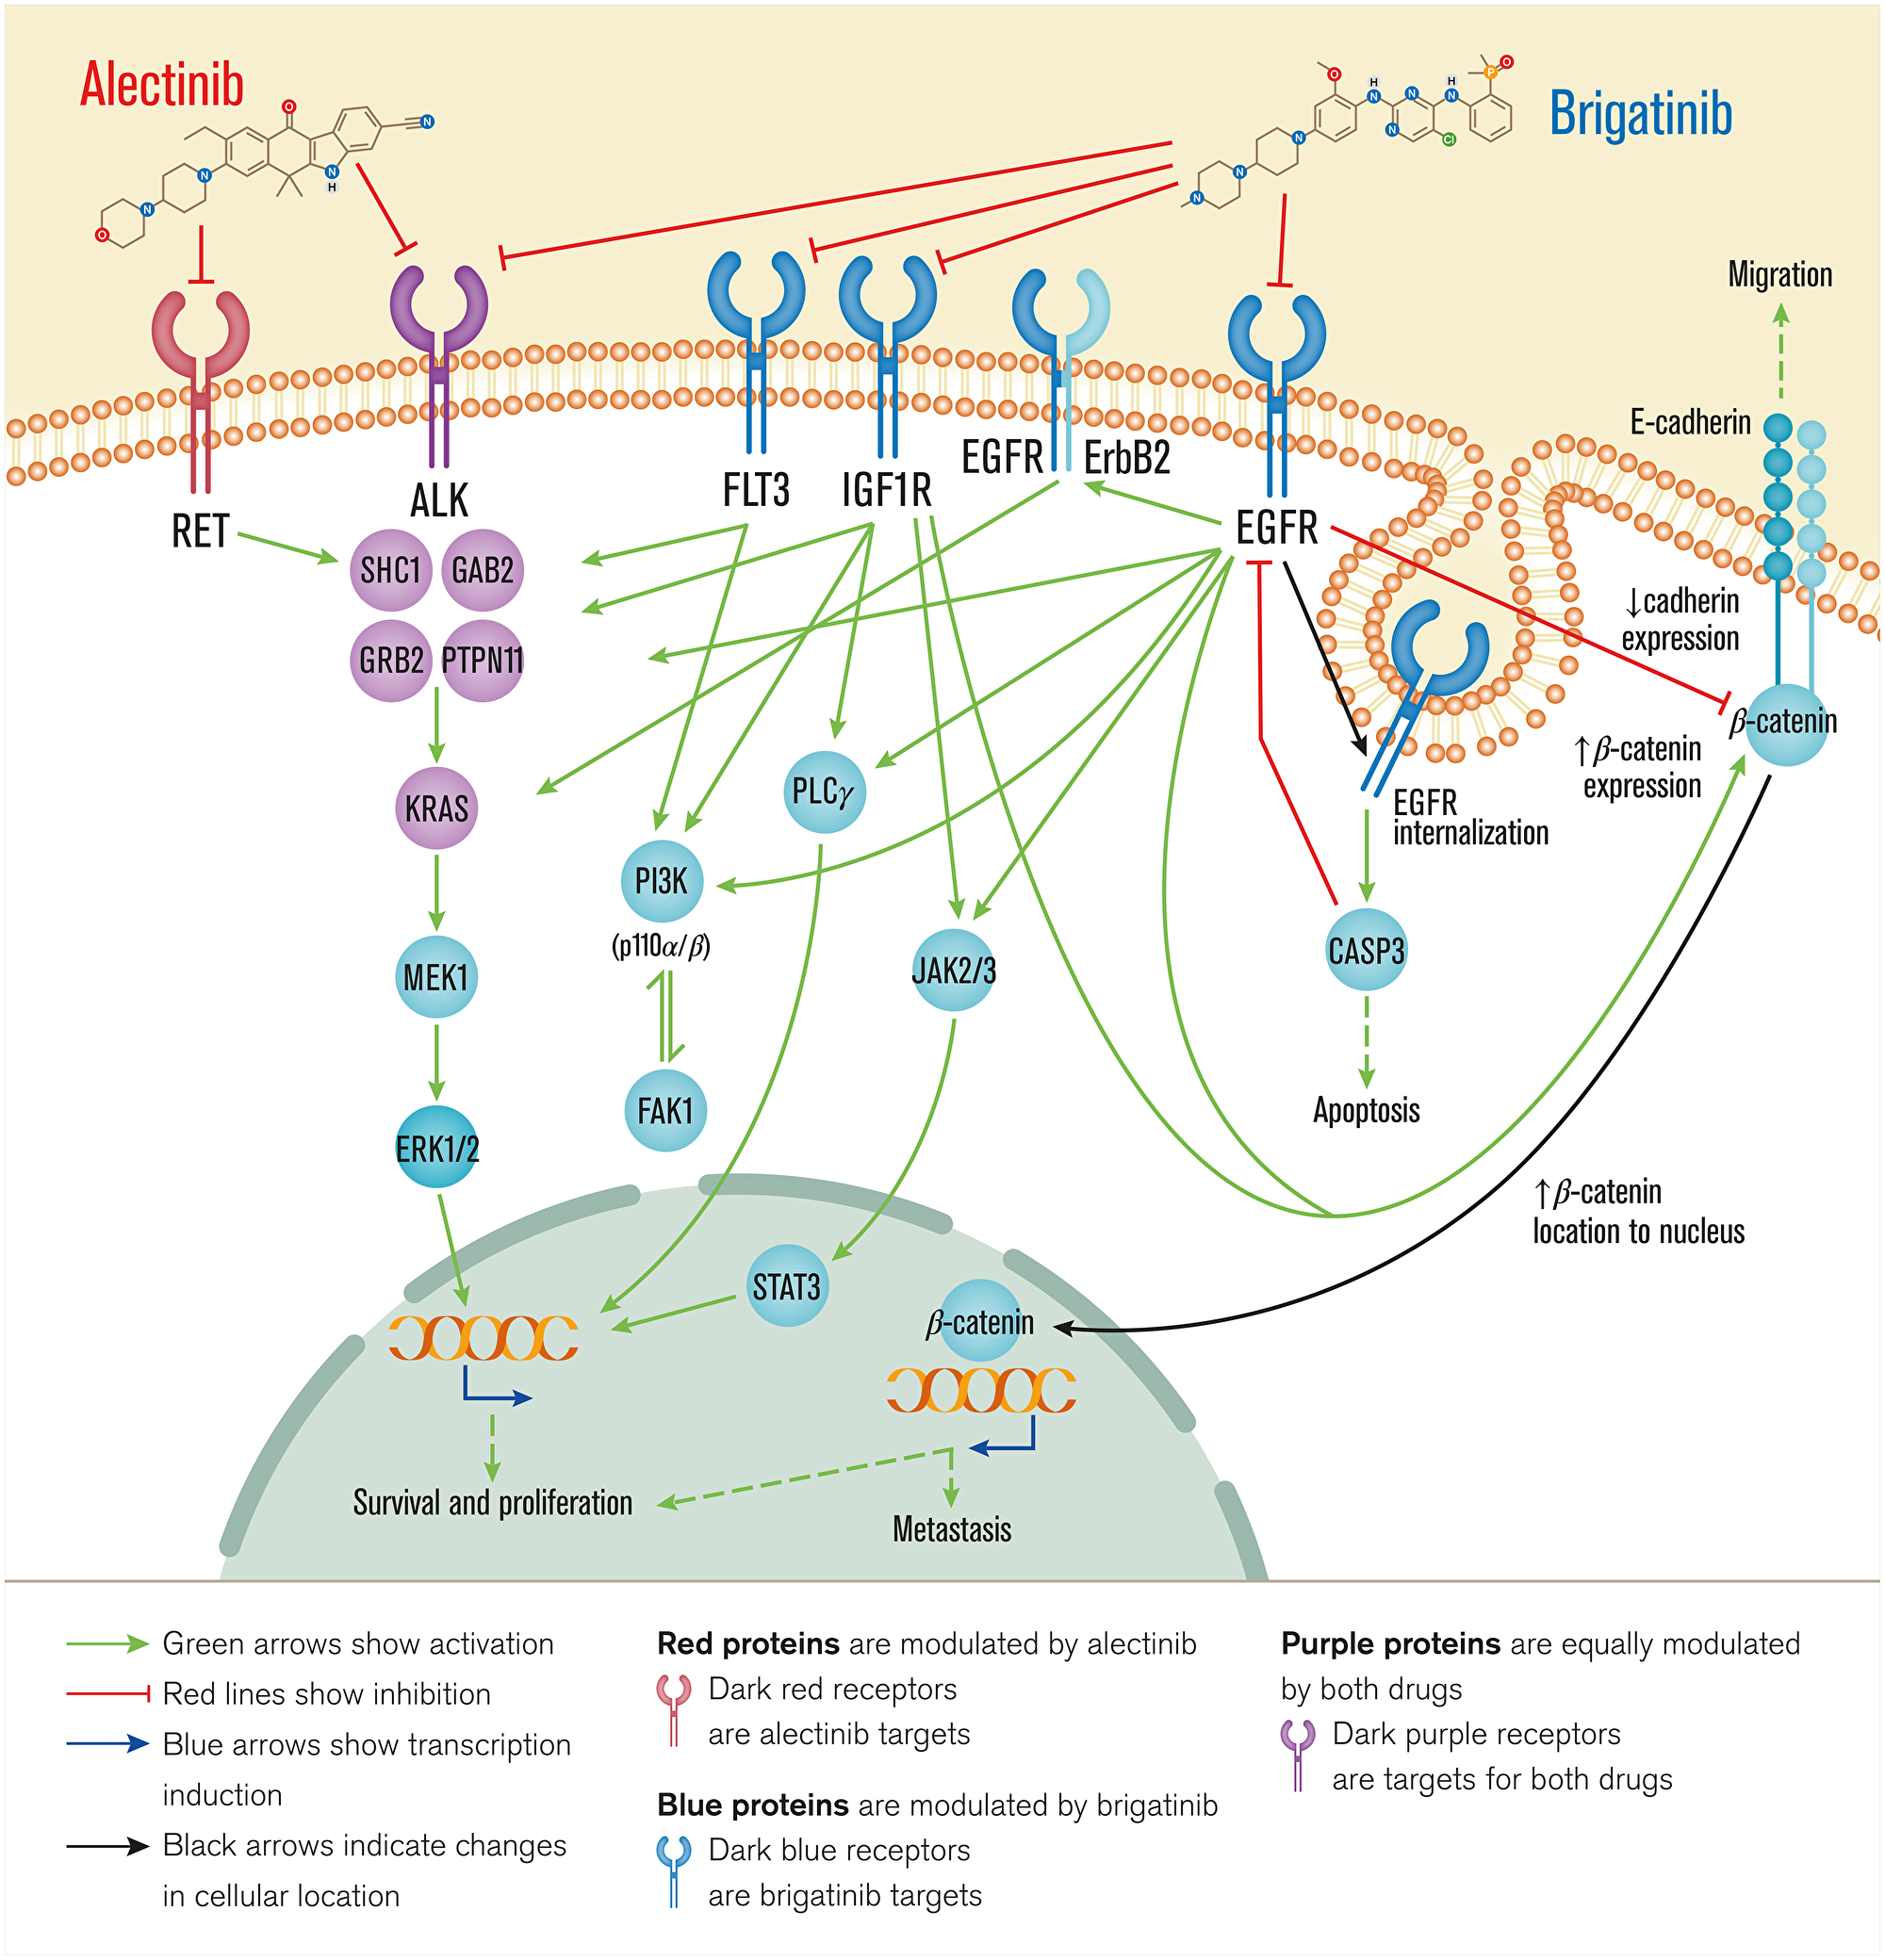 Overview of brigatinib's and alectinib's mechanisms of action.